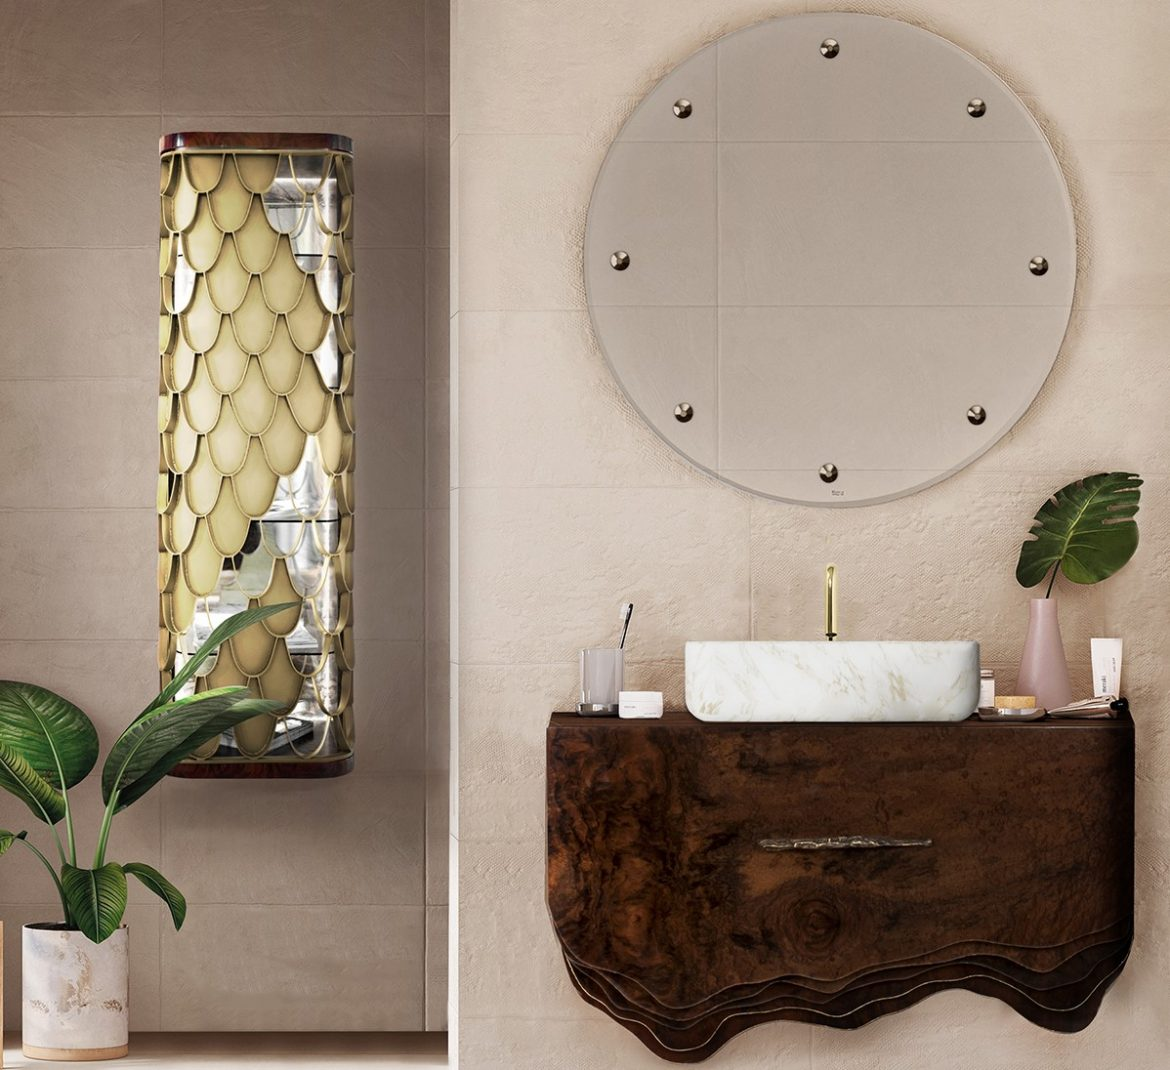 small bathroom decors 6 Ideas to Create Small Bathroom Decors that Will Make a Statement Bathroom with Wood Accents 4 2 scaled